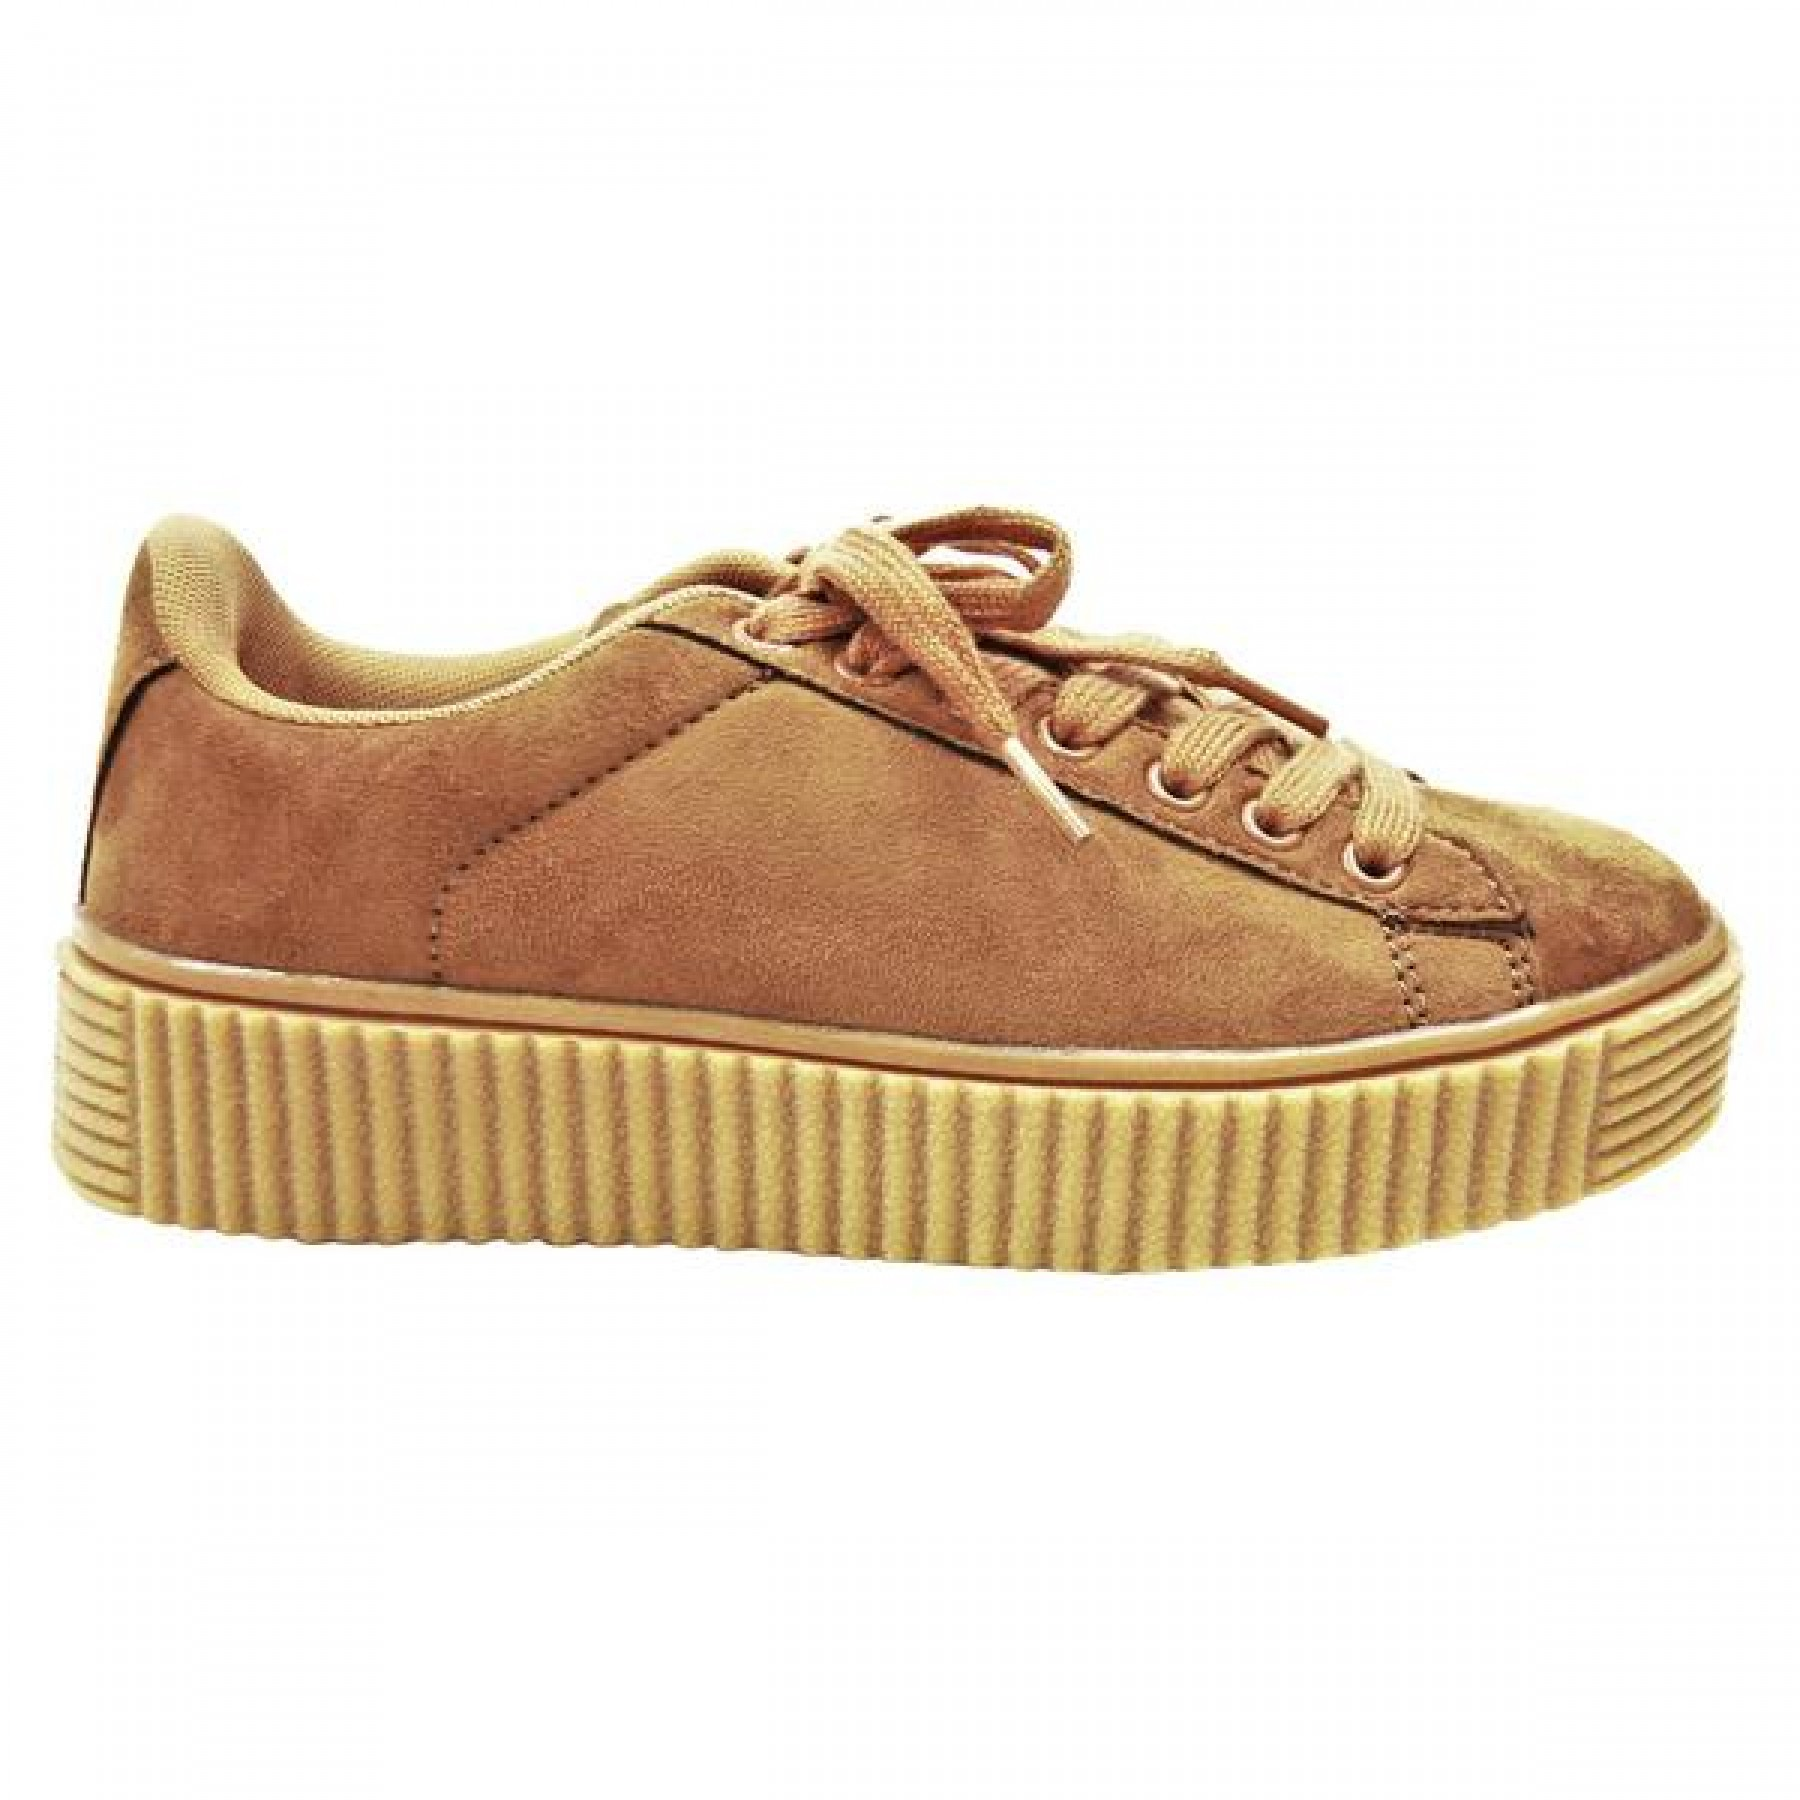 Women's Tan Platform Creeper Sneaker KATE - Tan